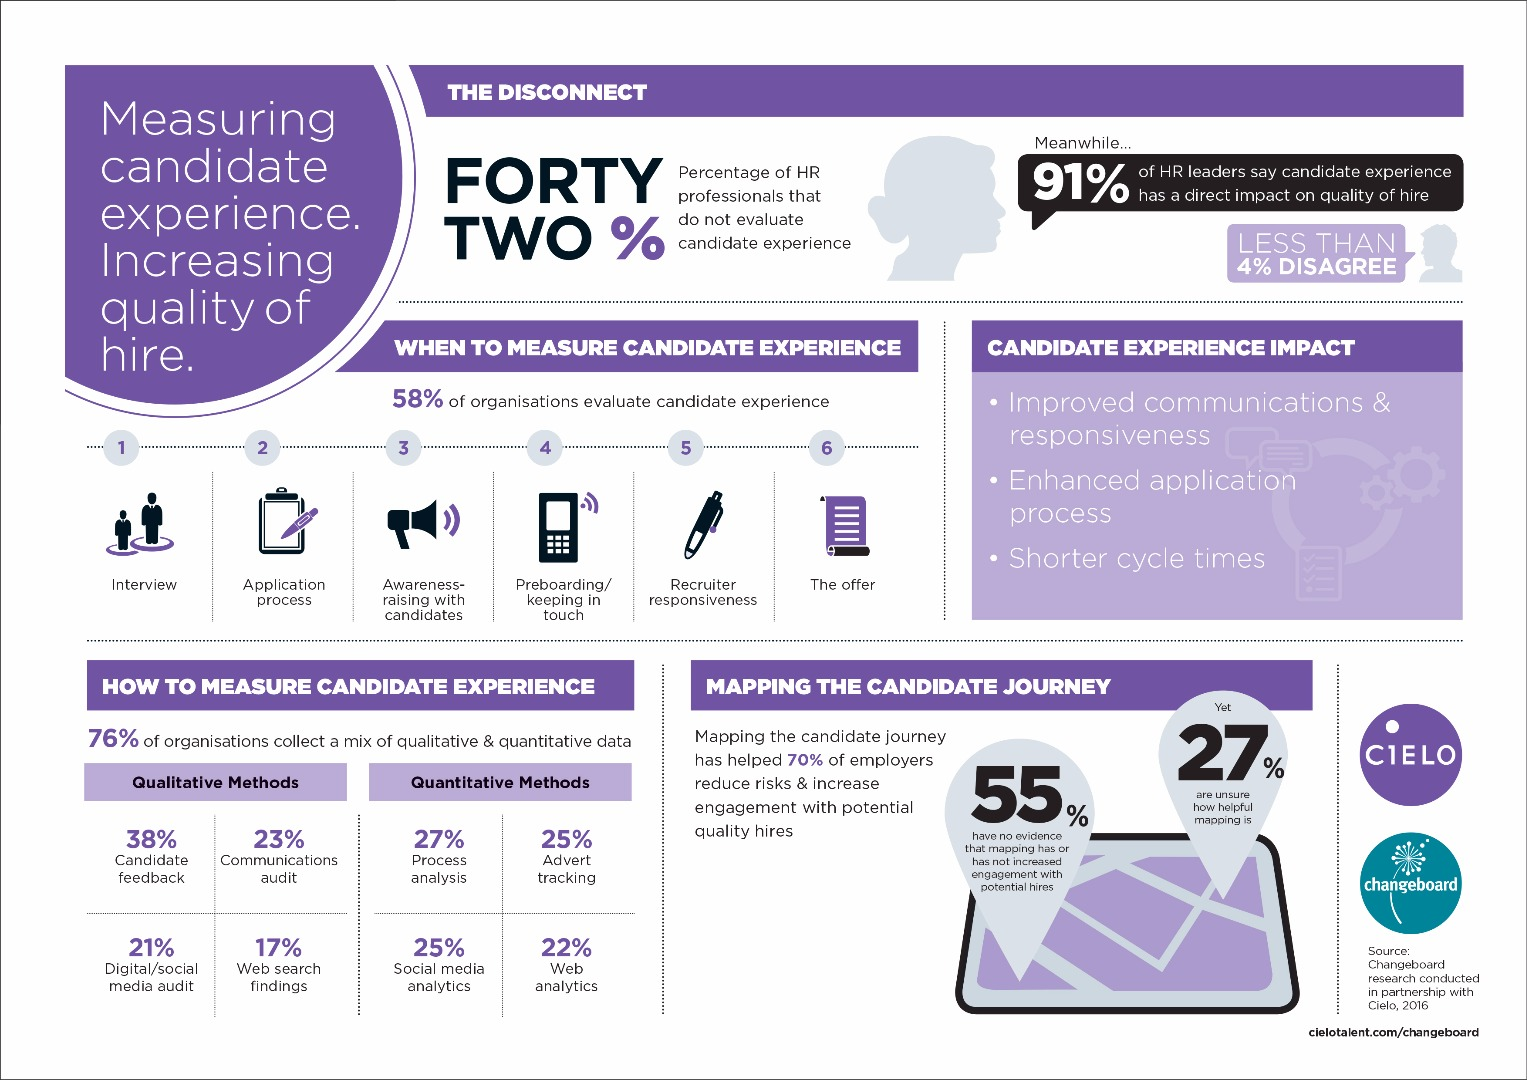 Measuring candidate experience. Increasing quality of hire. [Infographic]